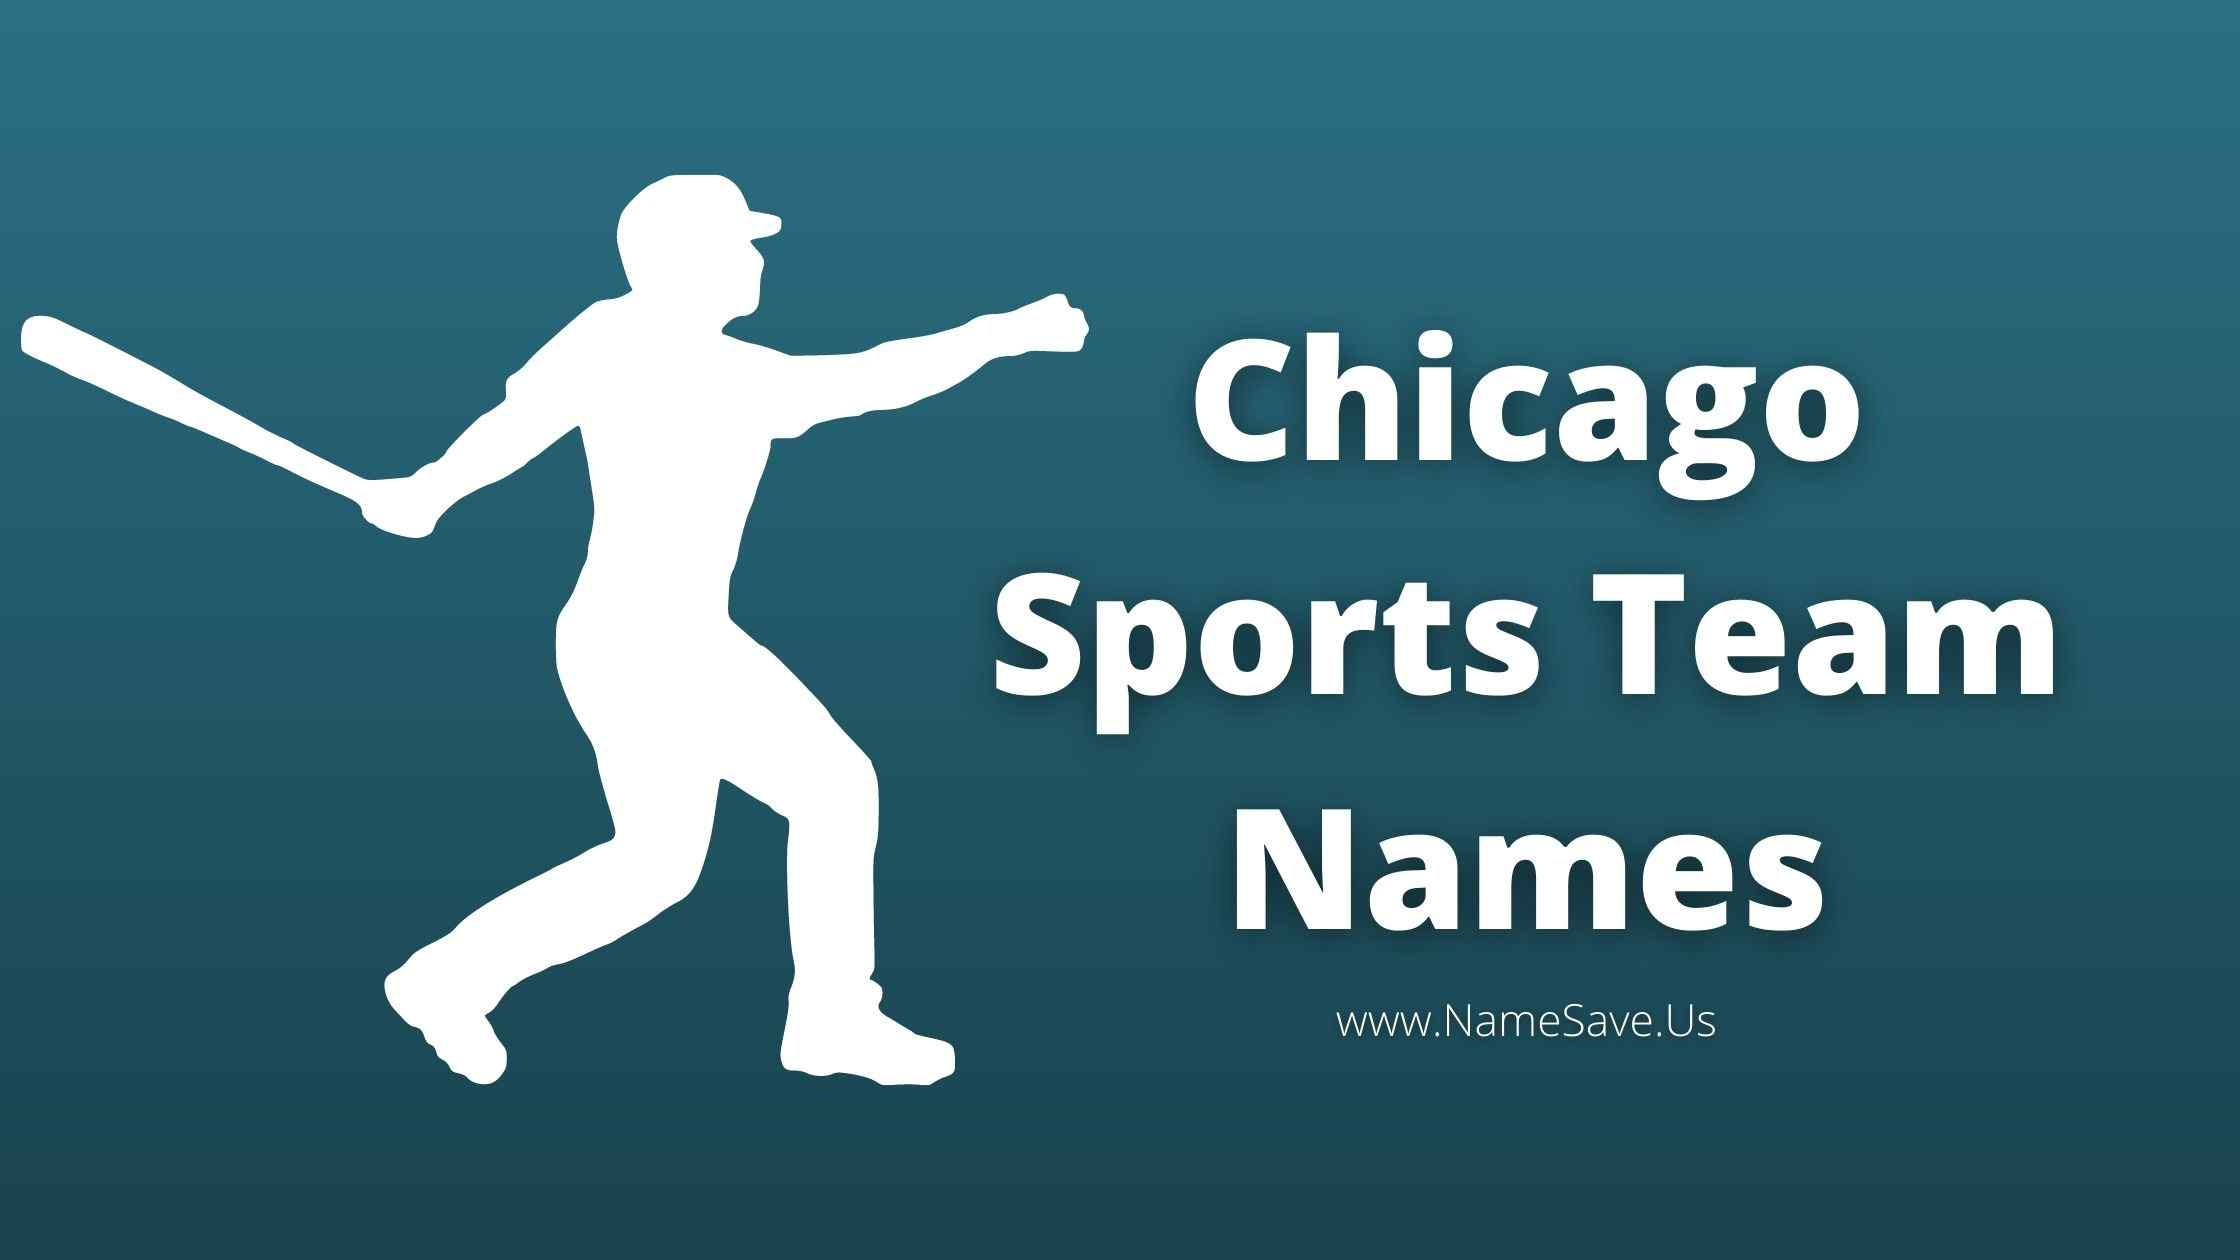 Chicago Sports Team Names